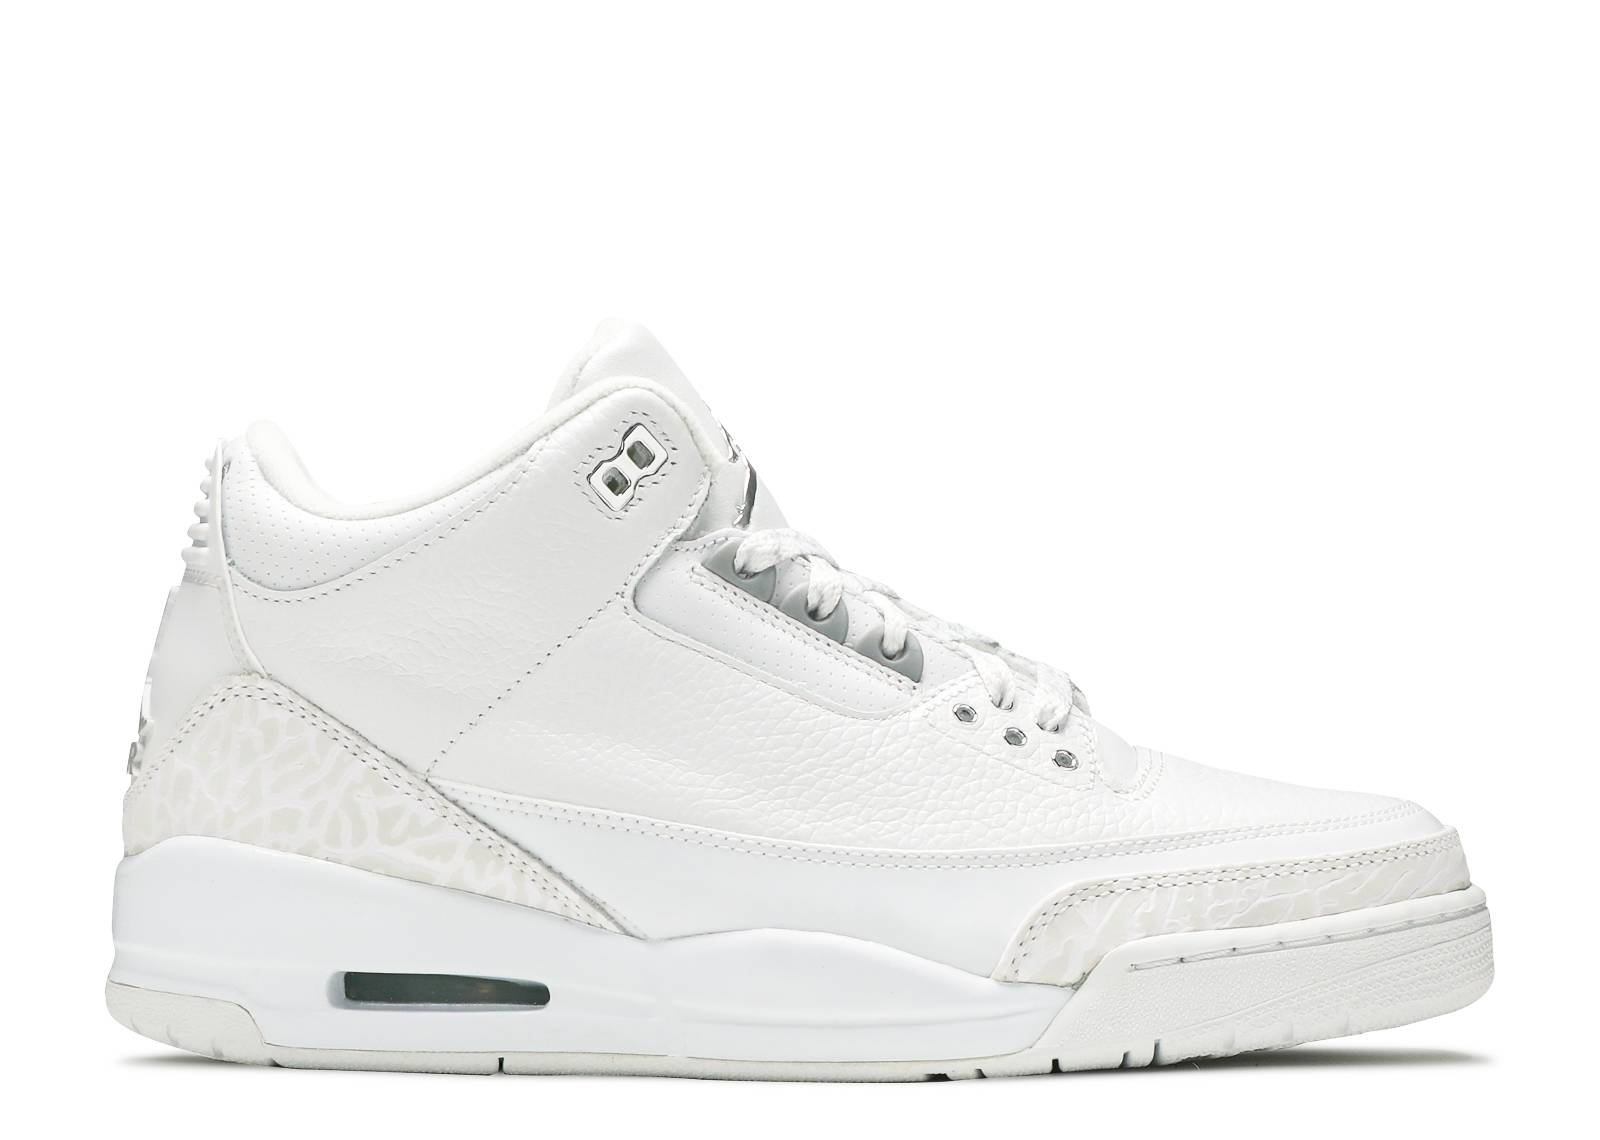 timeless design a6e0a 5a4d7 air jordan 3 retro